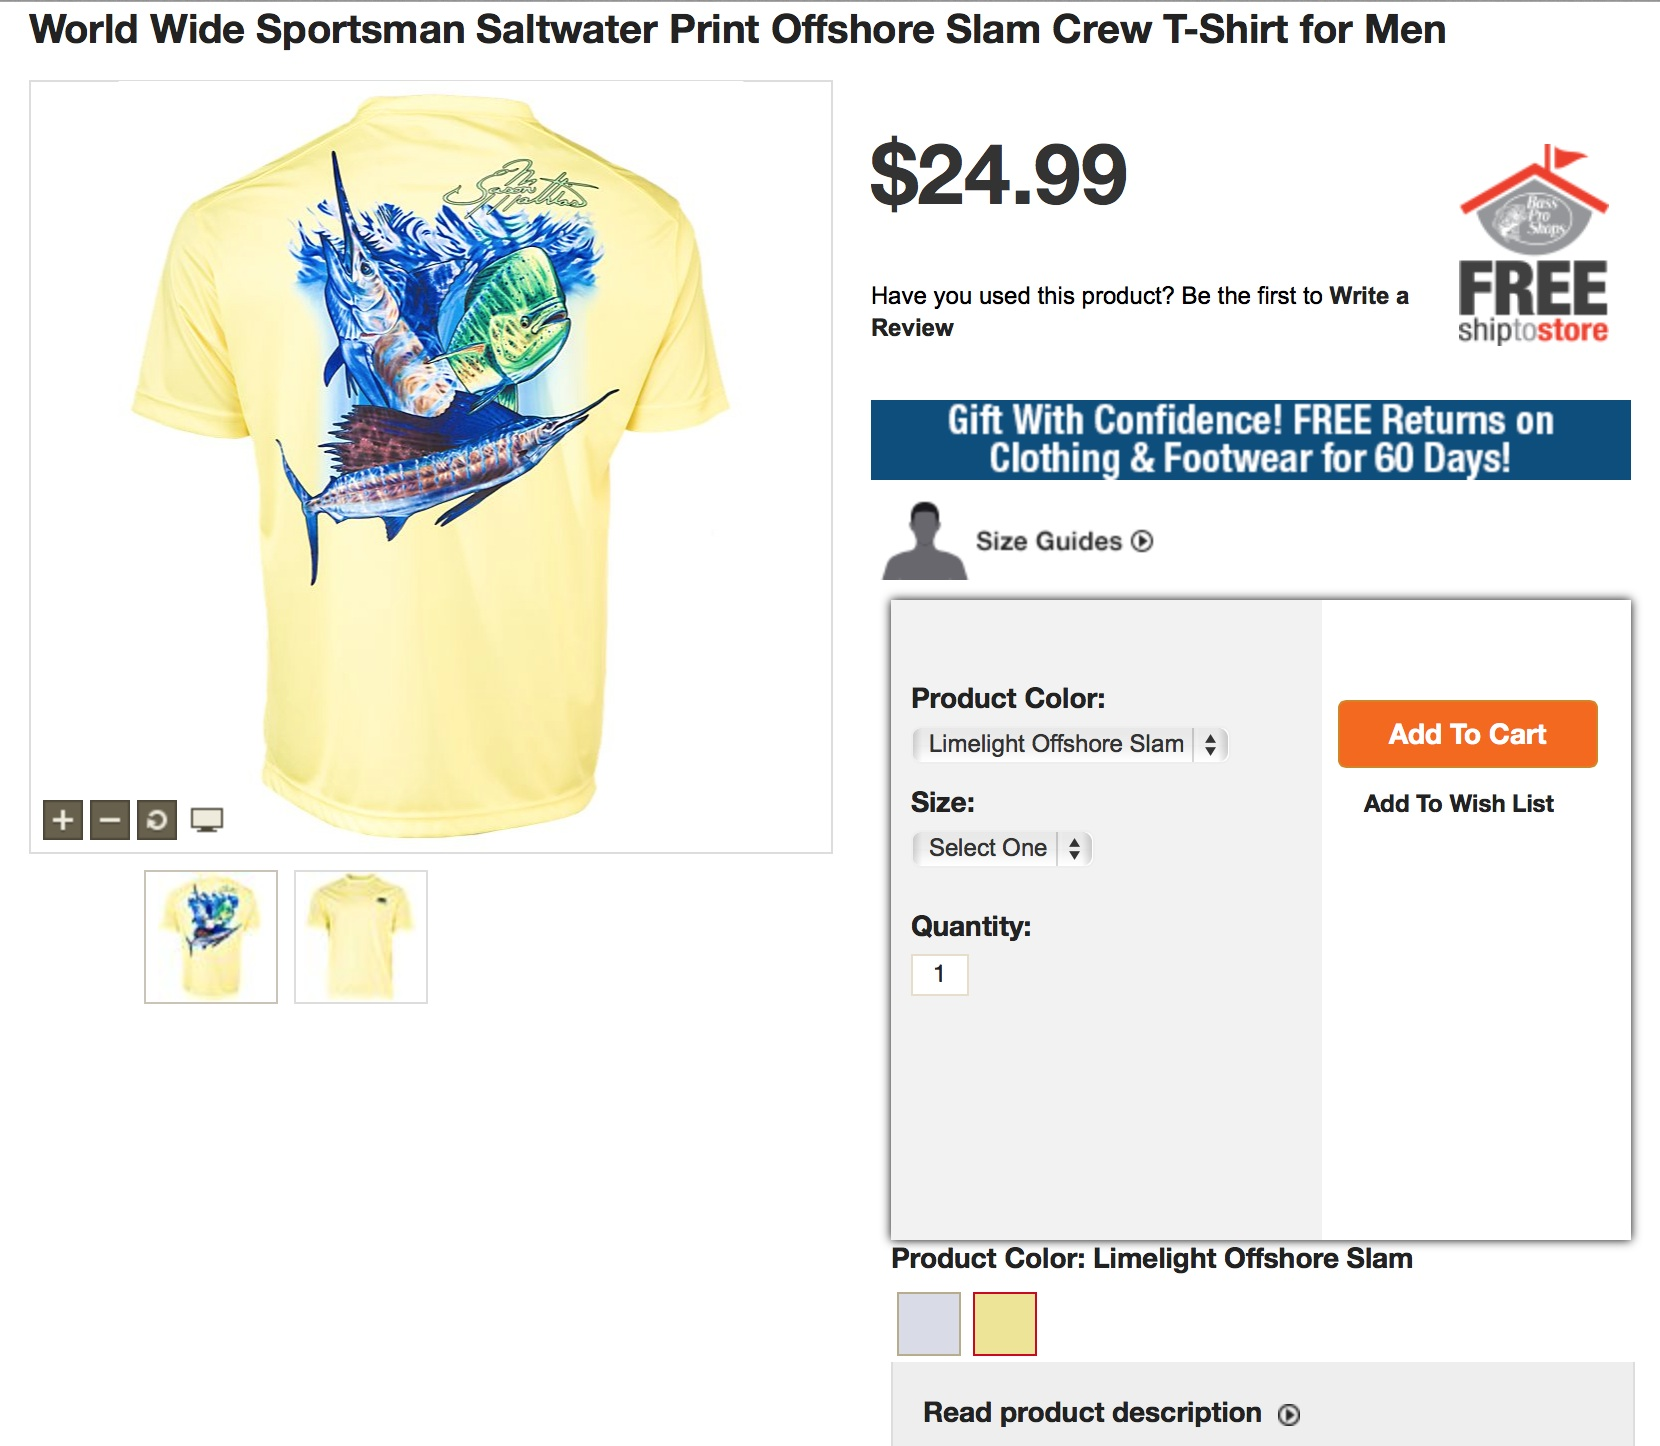 jason-mathias-offshore-slam-shirt.jpg